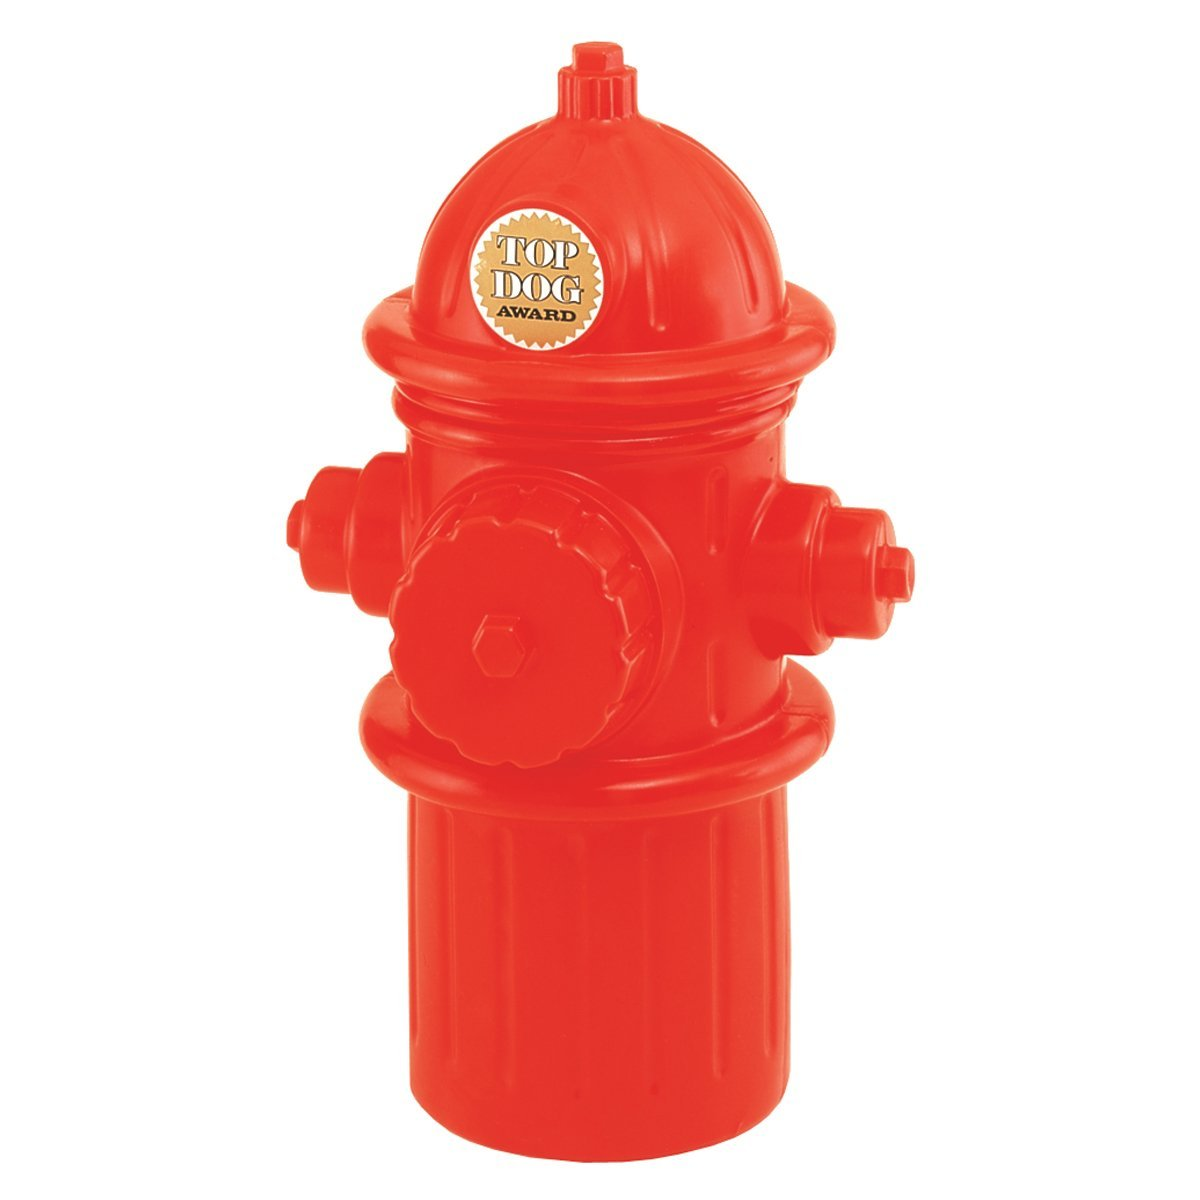 Soft-Flex Life-size Fire Hydrant Container red